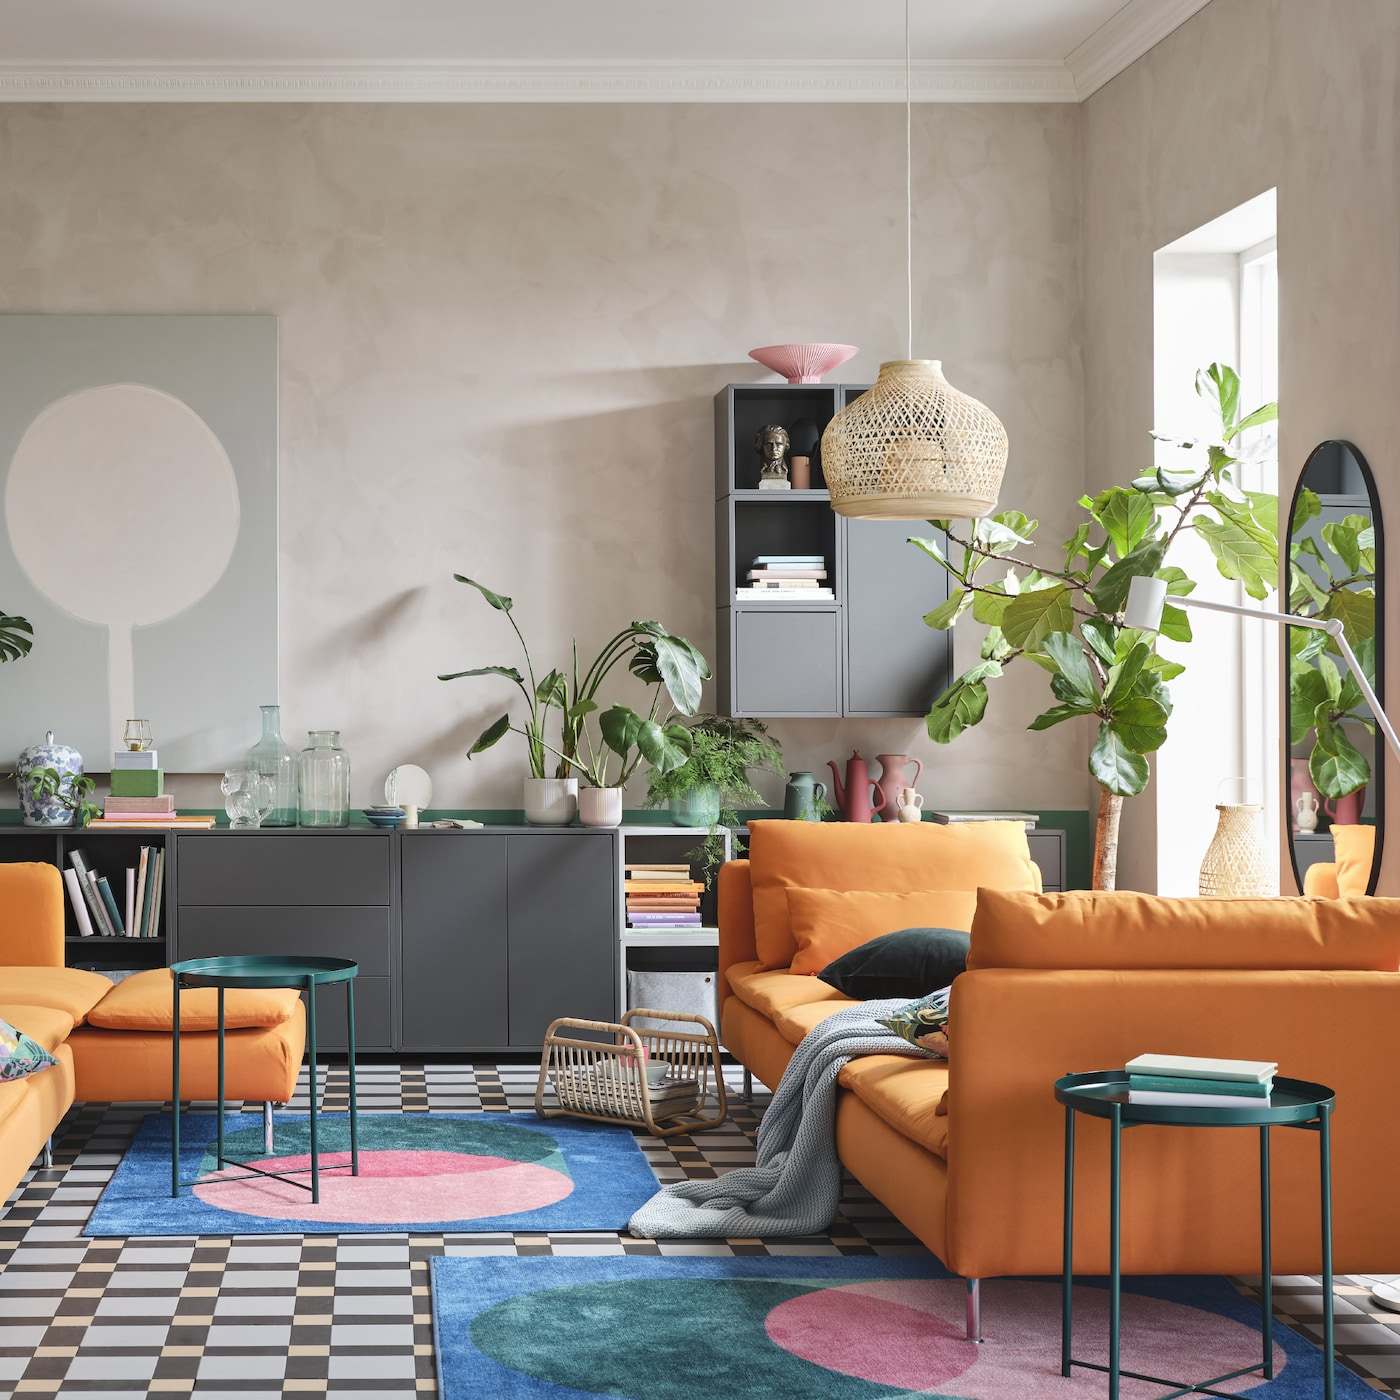 Link to 'Flexible fashionable favourites' - image of a living room with a SÖDERHAMN sofa and chaise longues in orange